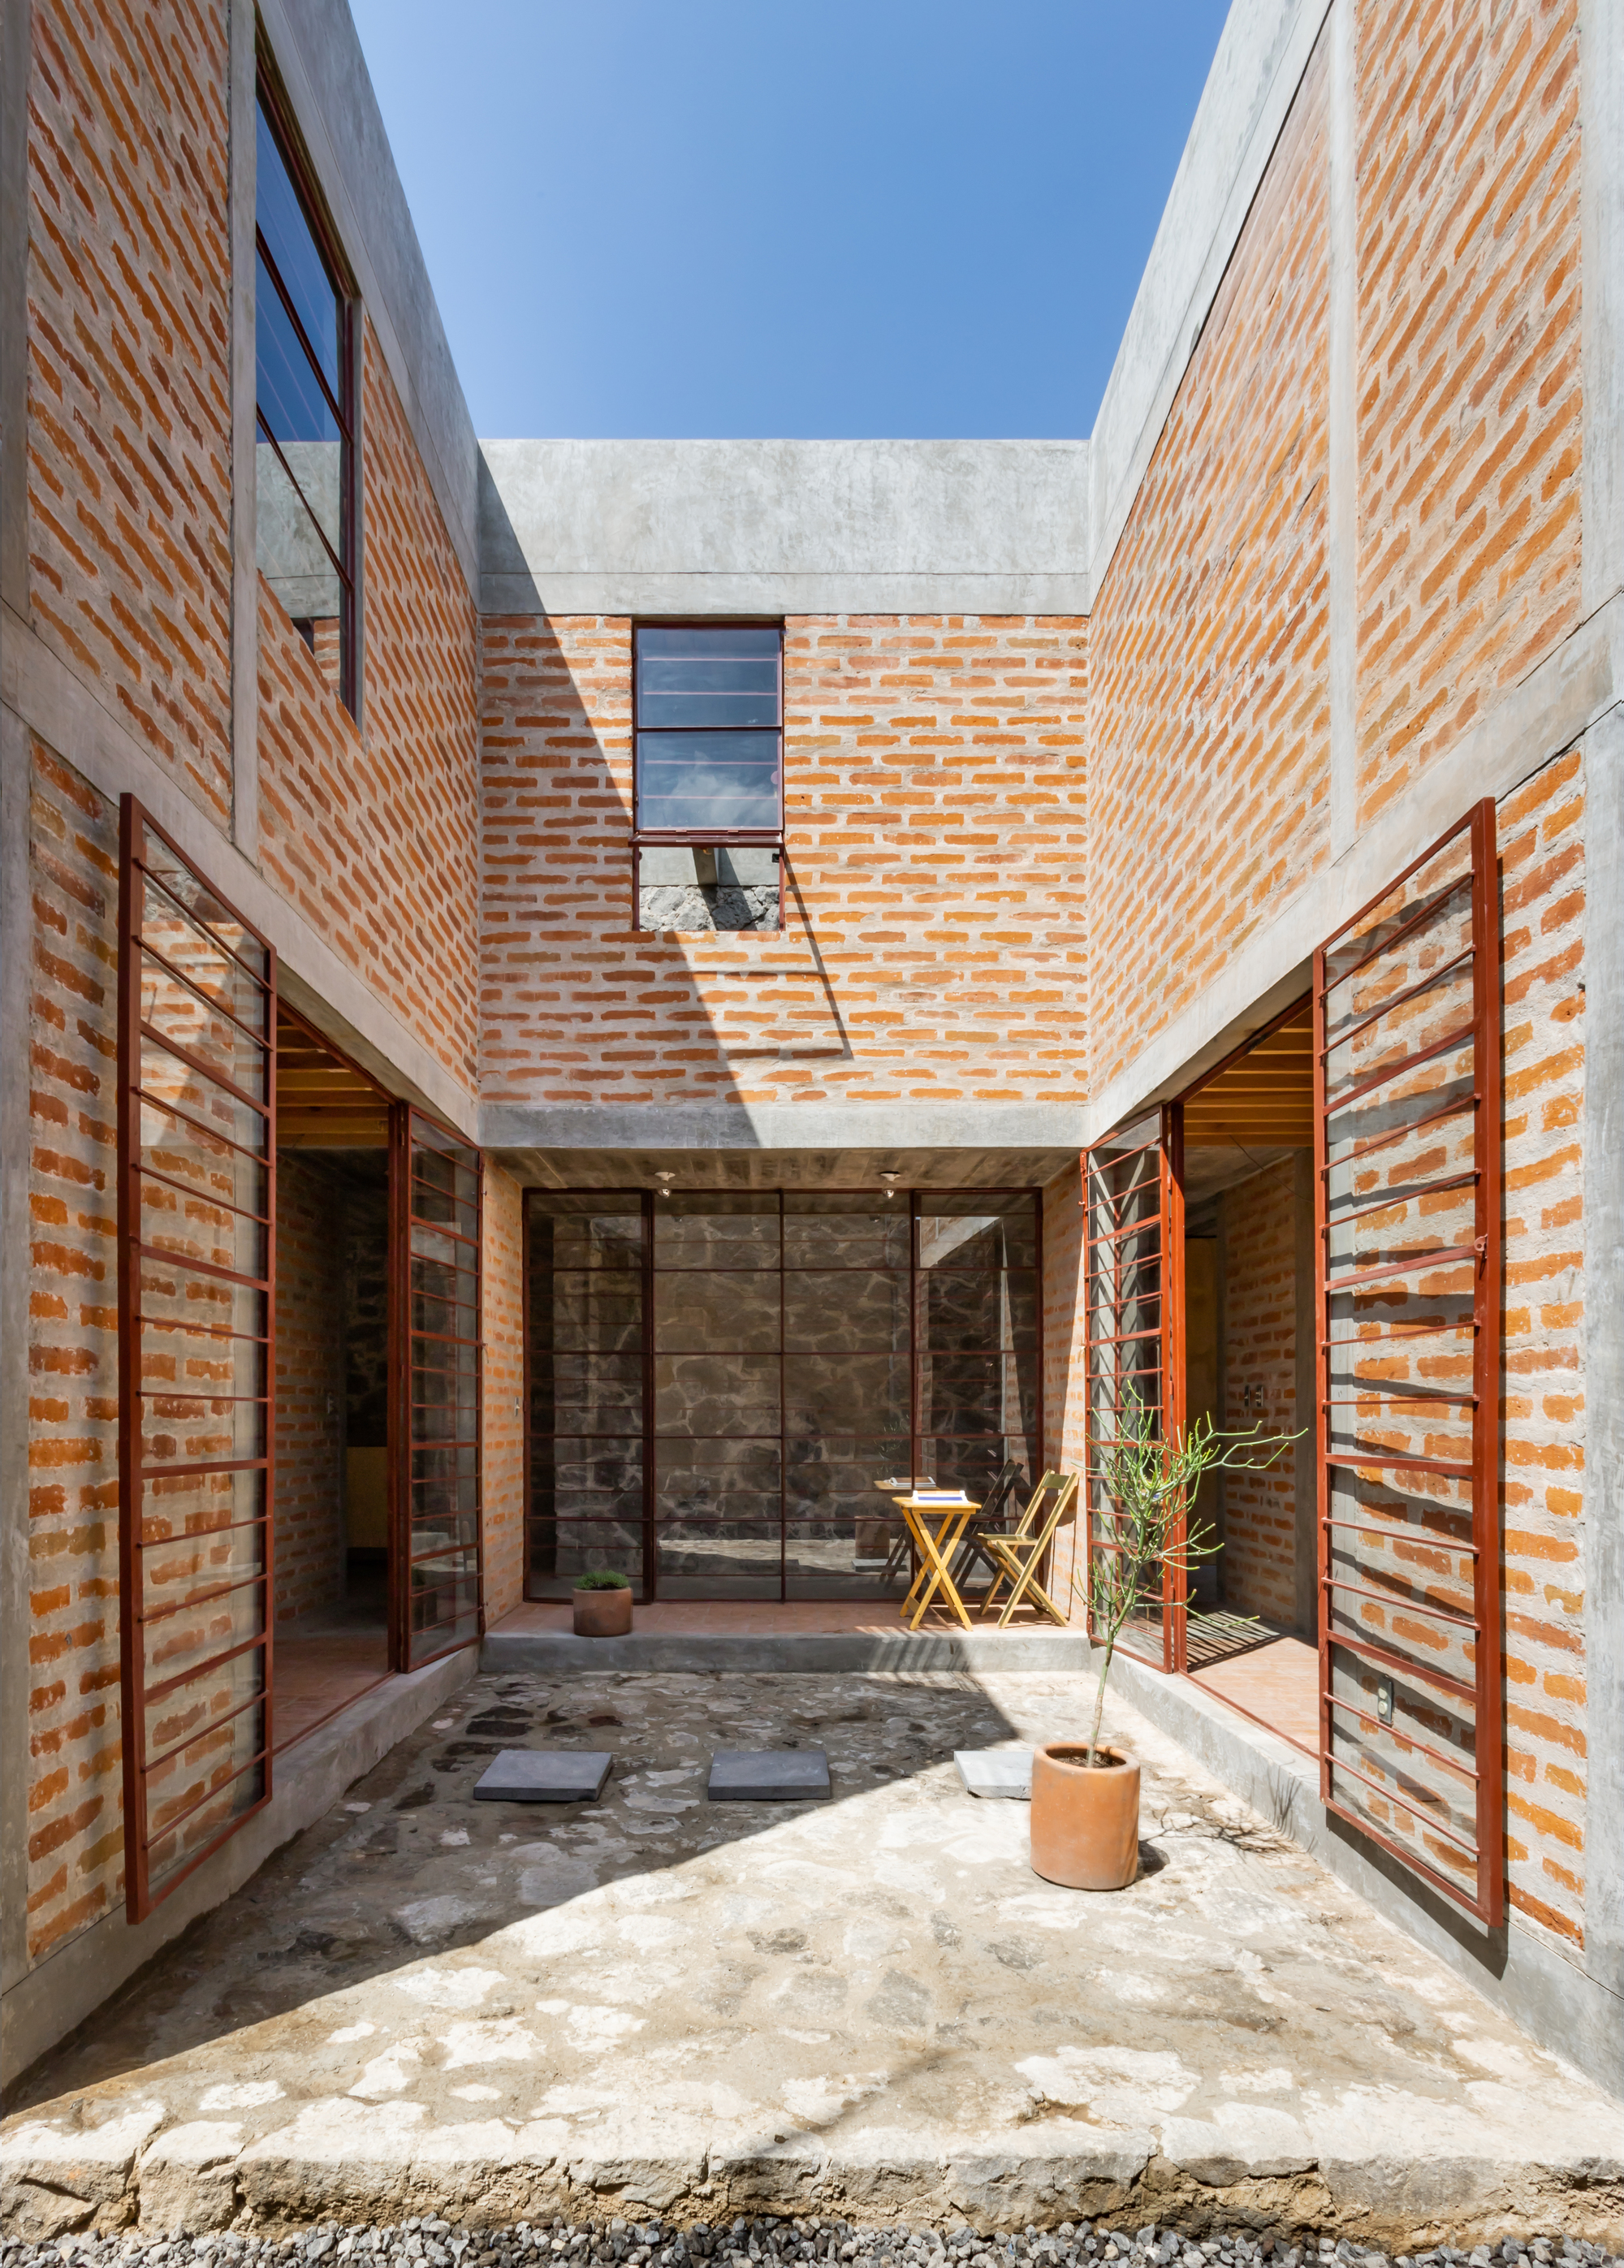 Maison Avec Patio Central houses architecture and design | archdaily